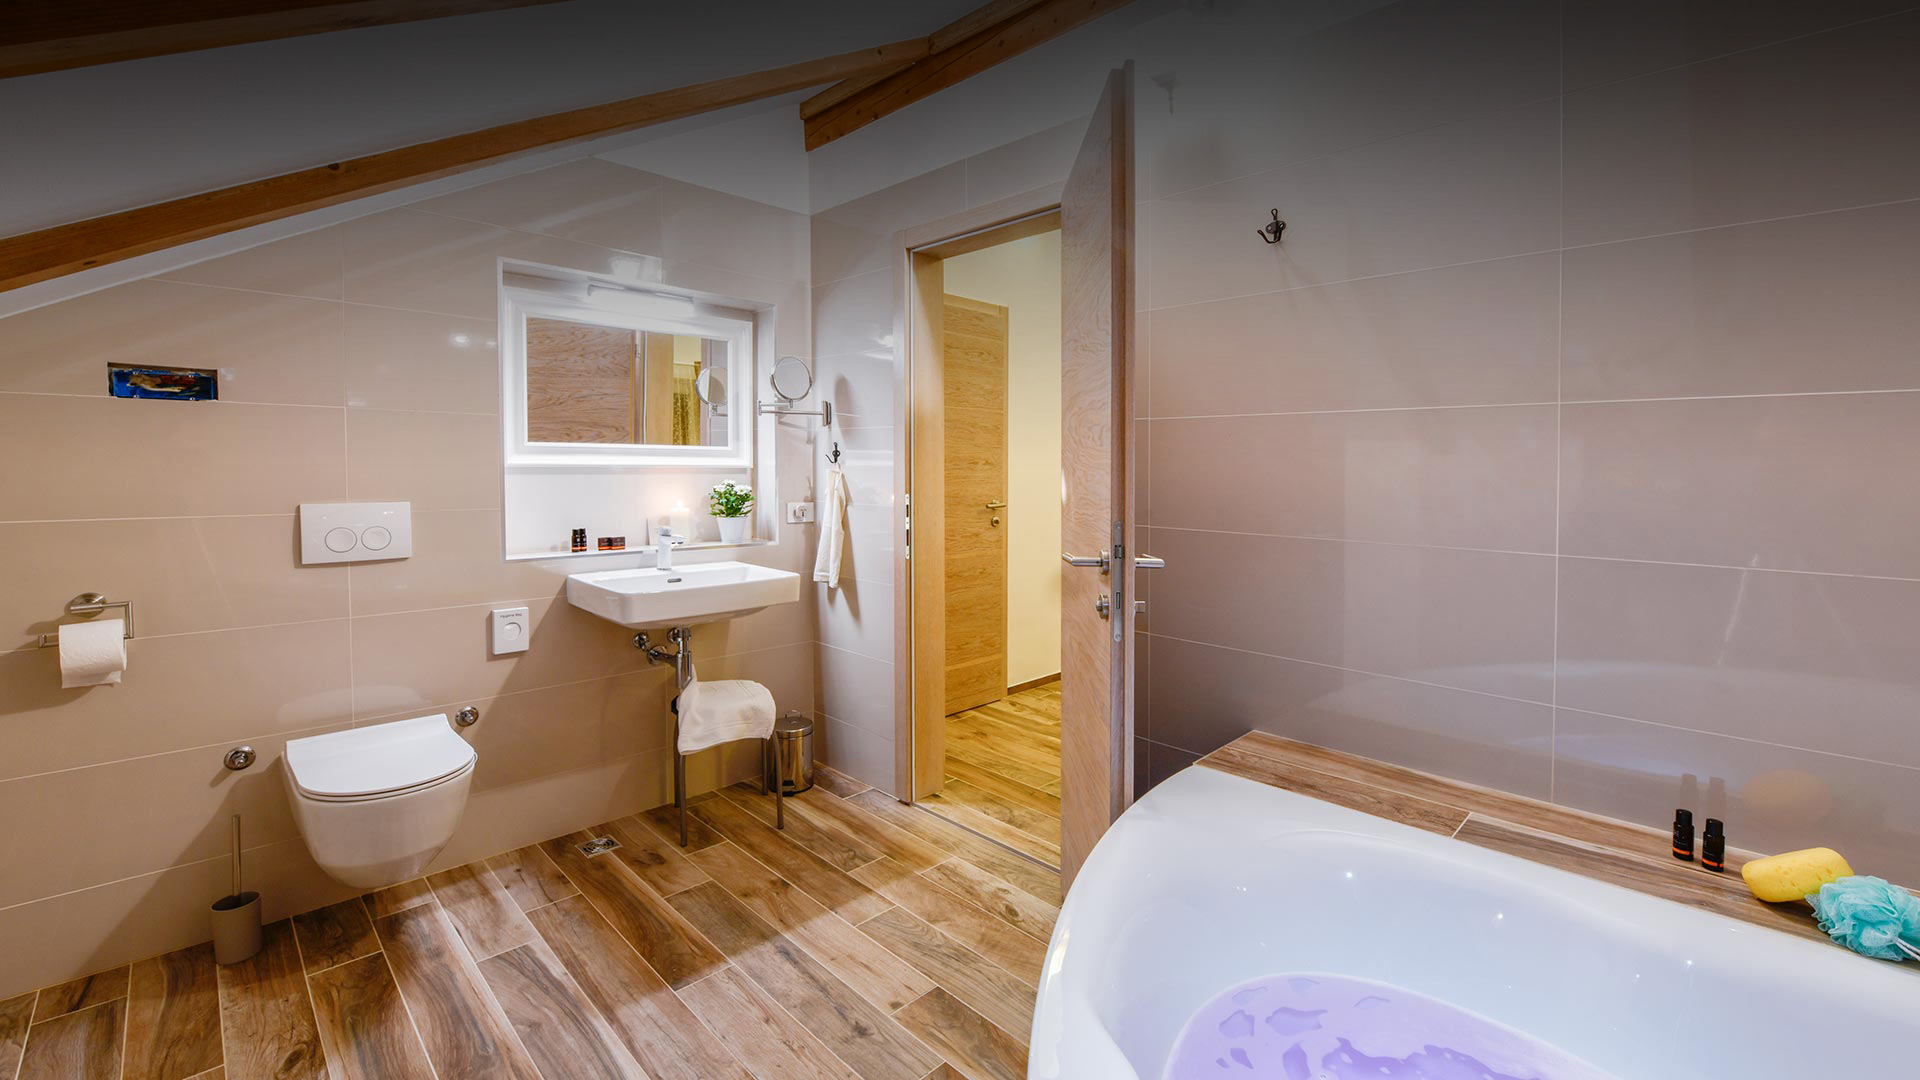 Exclusive Villas Joja Bathroom